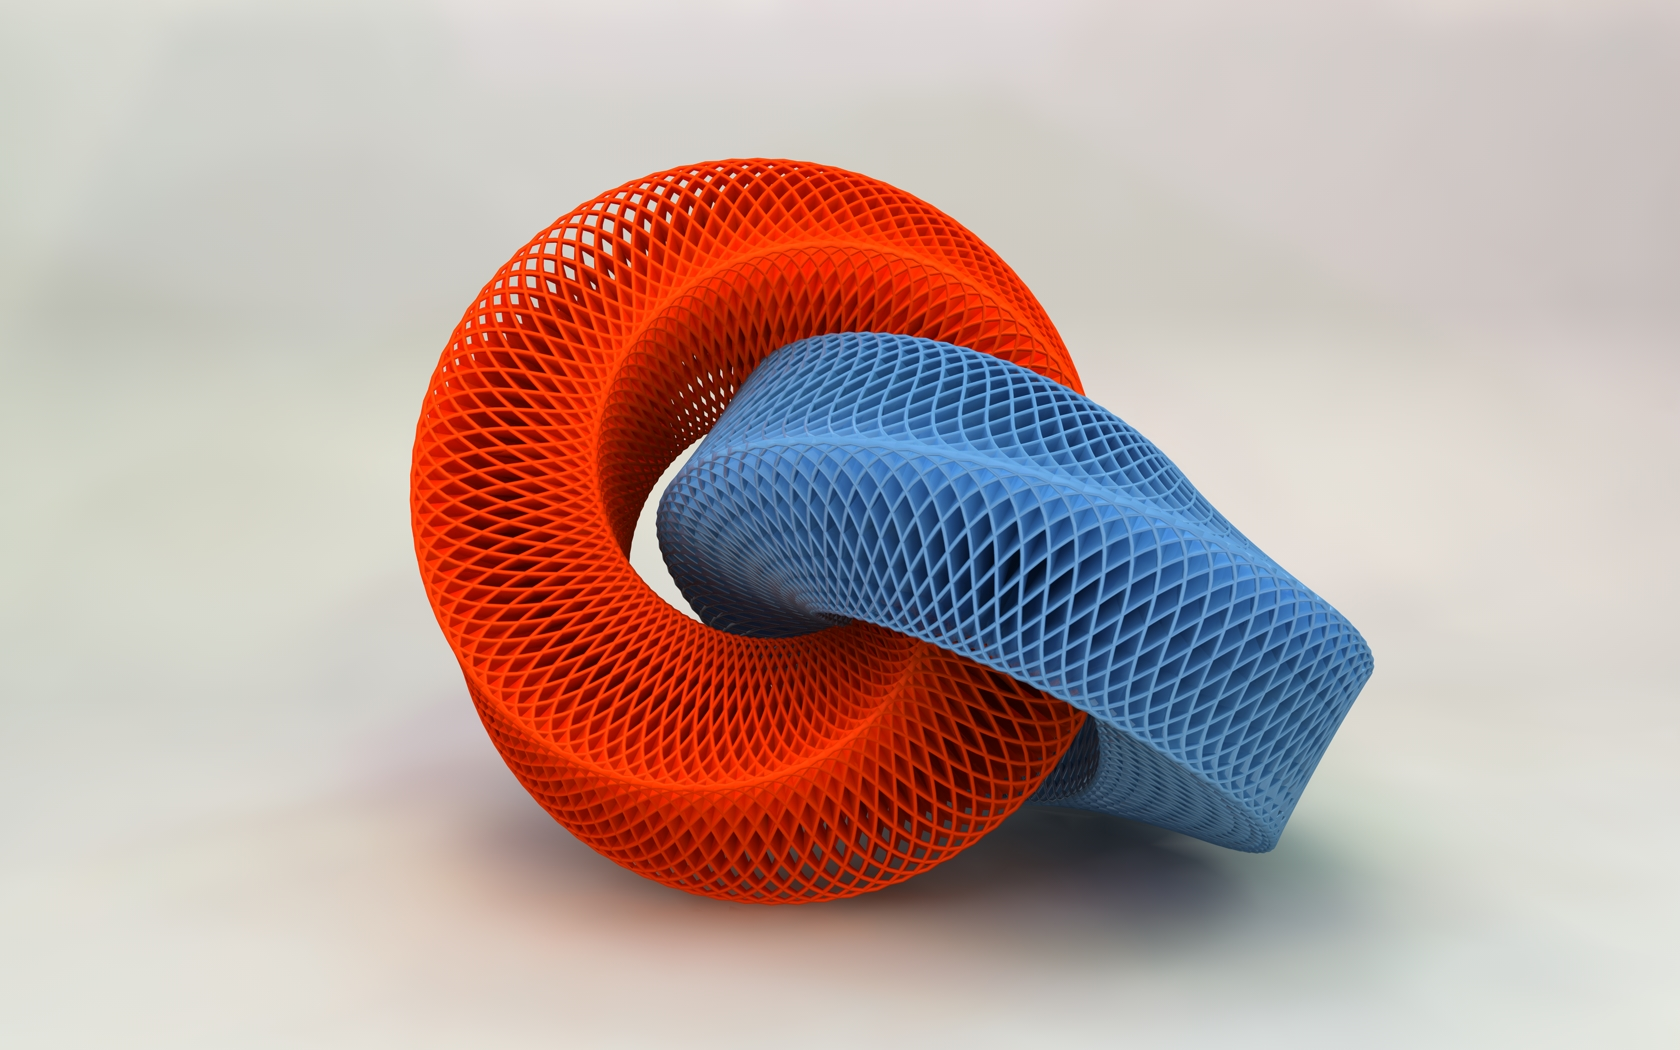 Straight out of line by Steven-Becker